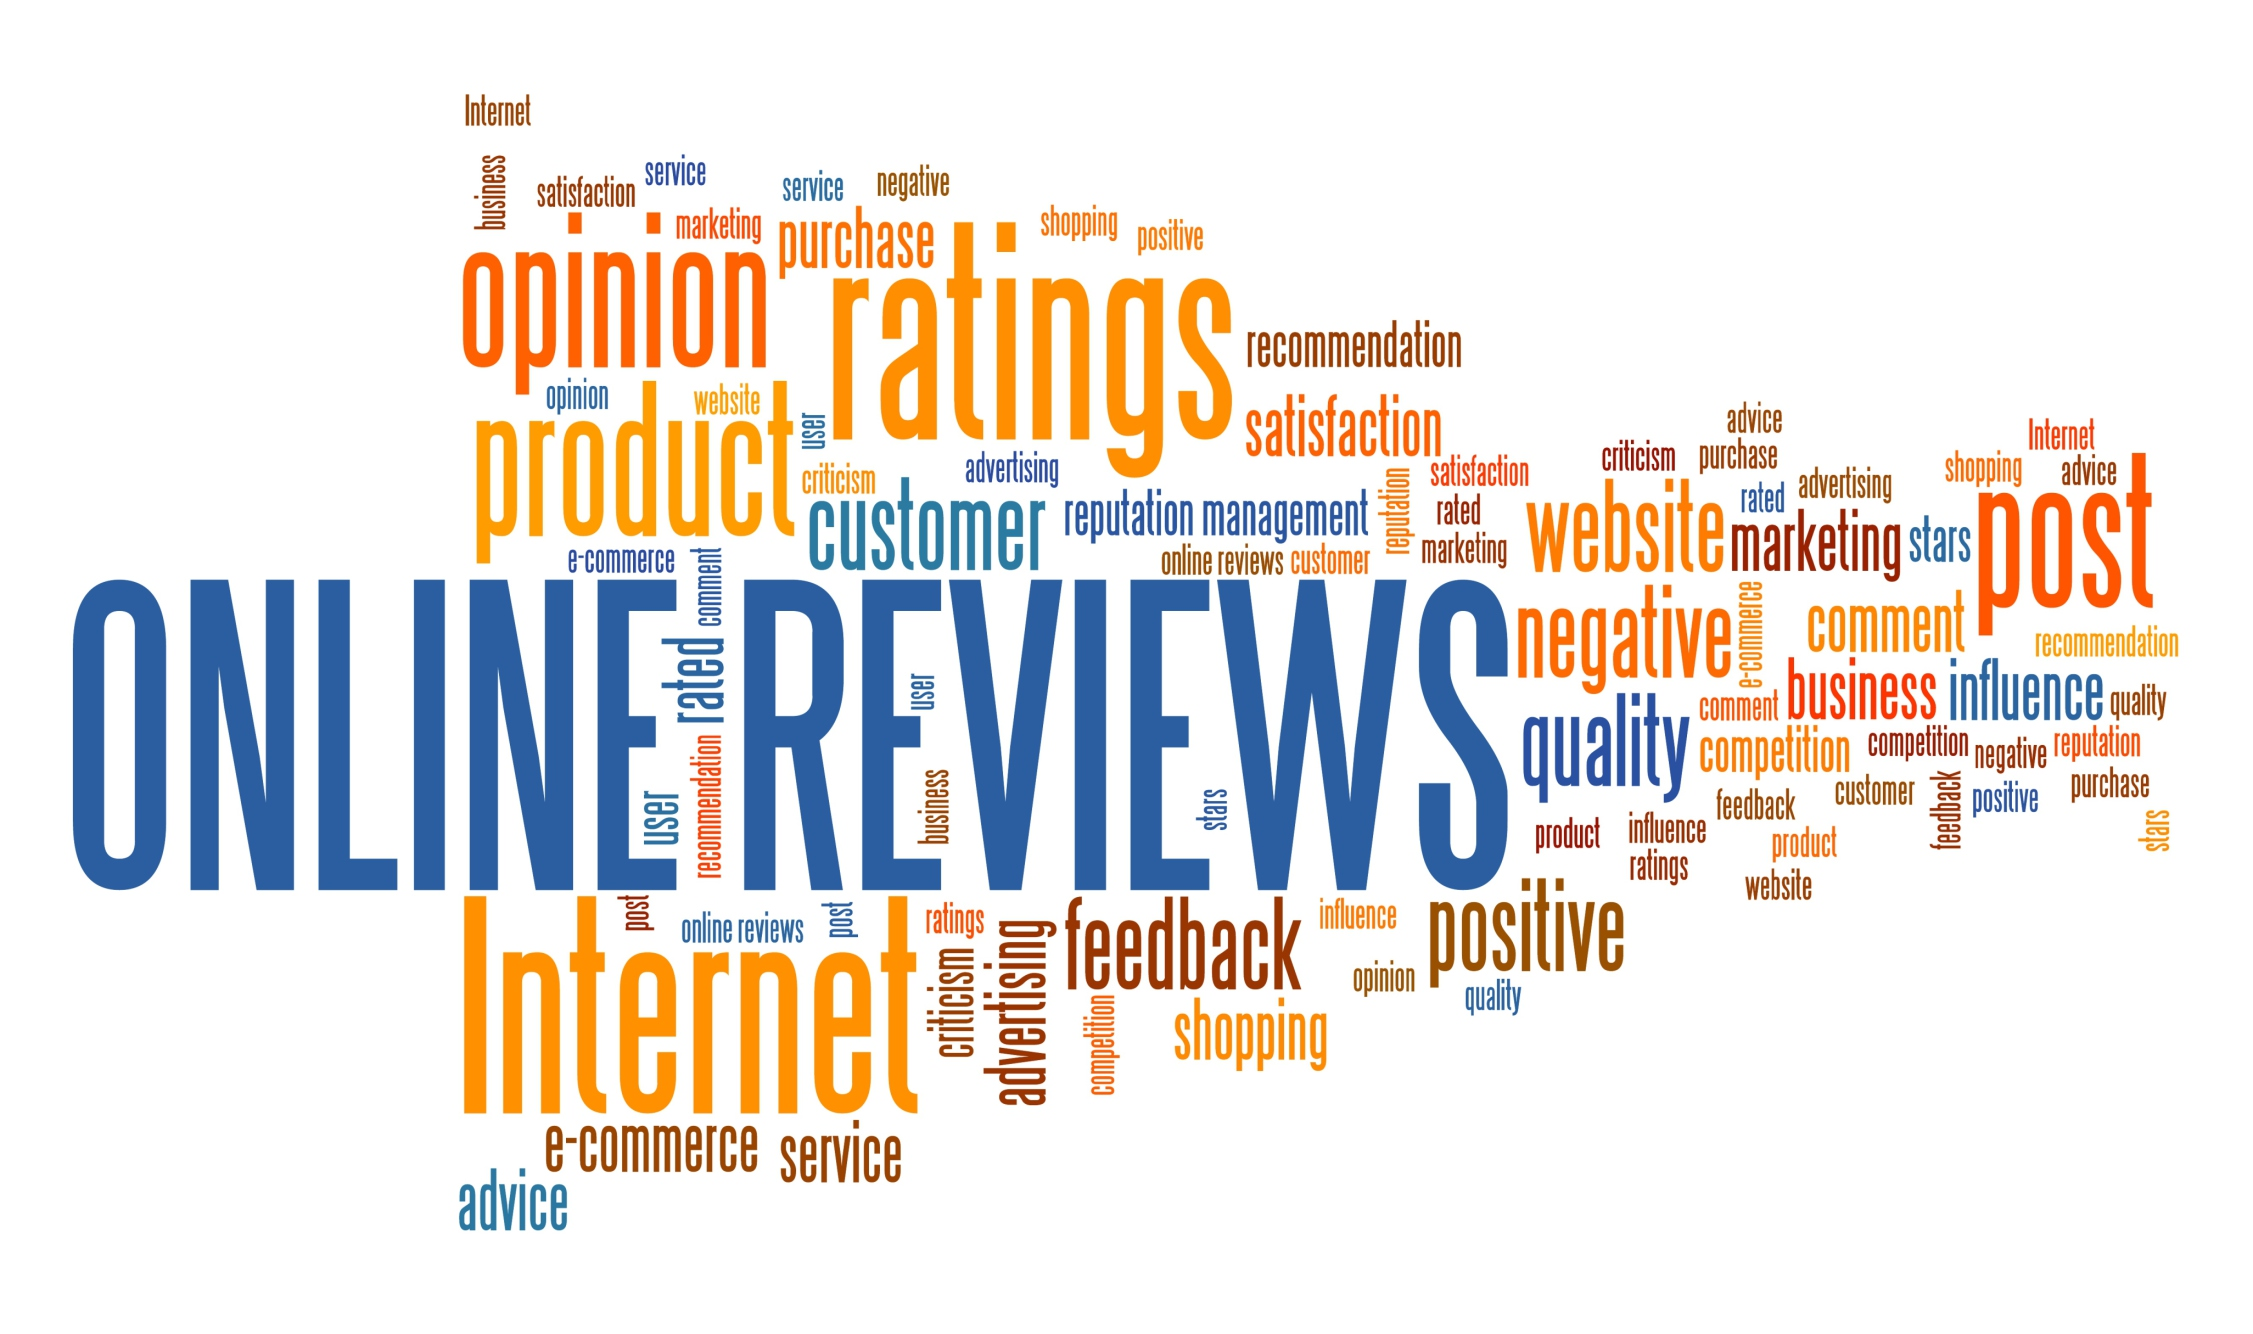 Online Reviews in 2018: The Best Ways to Turn Them into a Marketing Plus